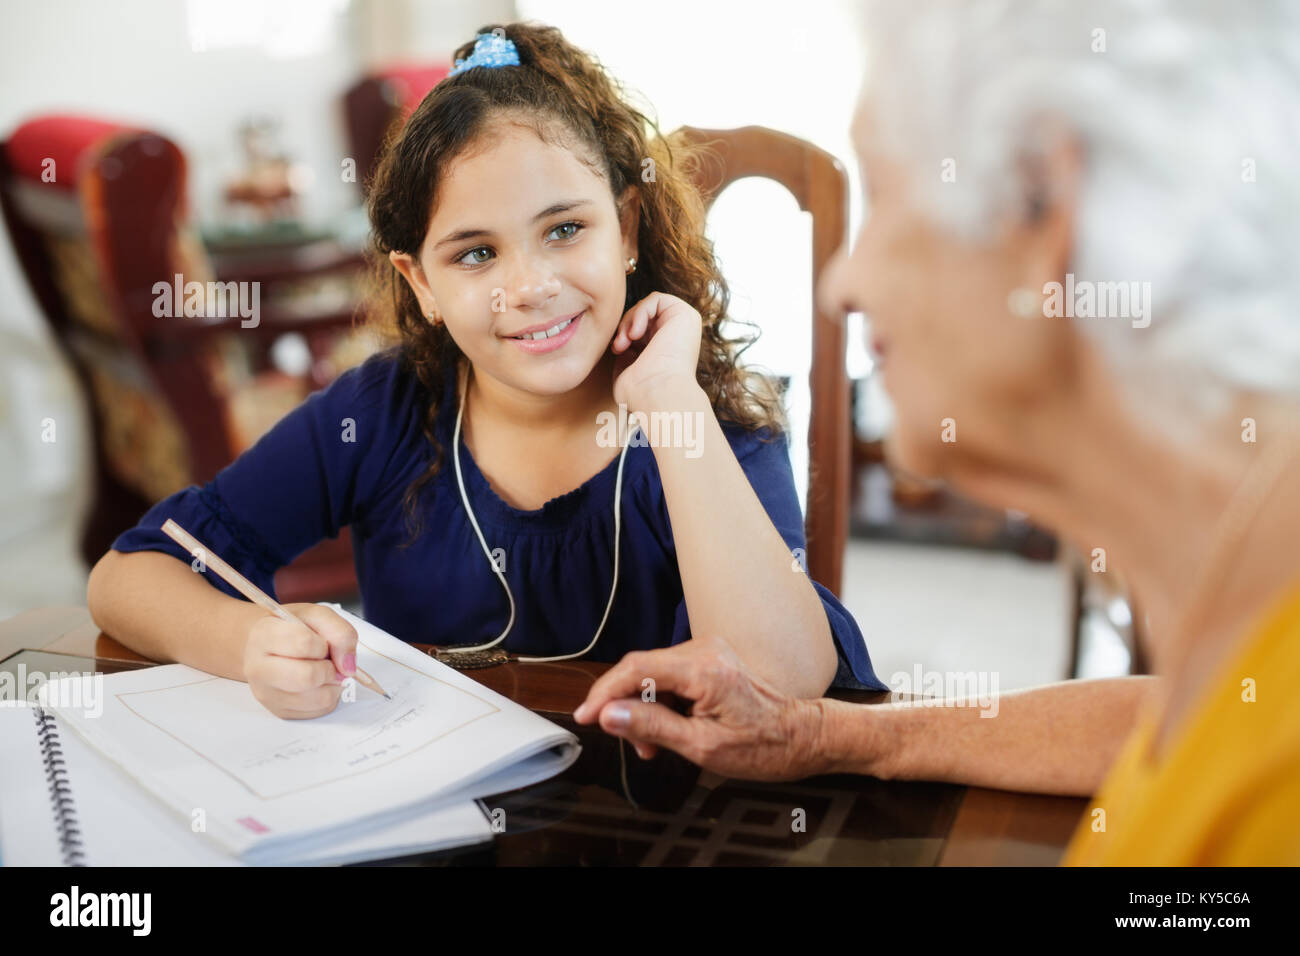 Happy little girl doing school homework with elderly woman at home. Family relationship with grandmother and granddaughter. Stock Photo